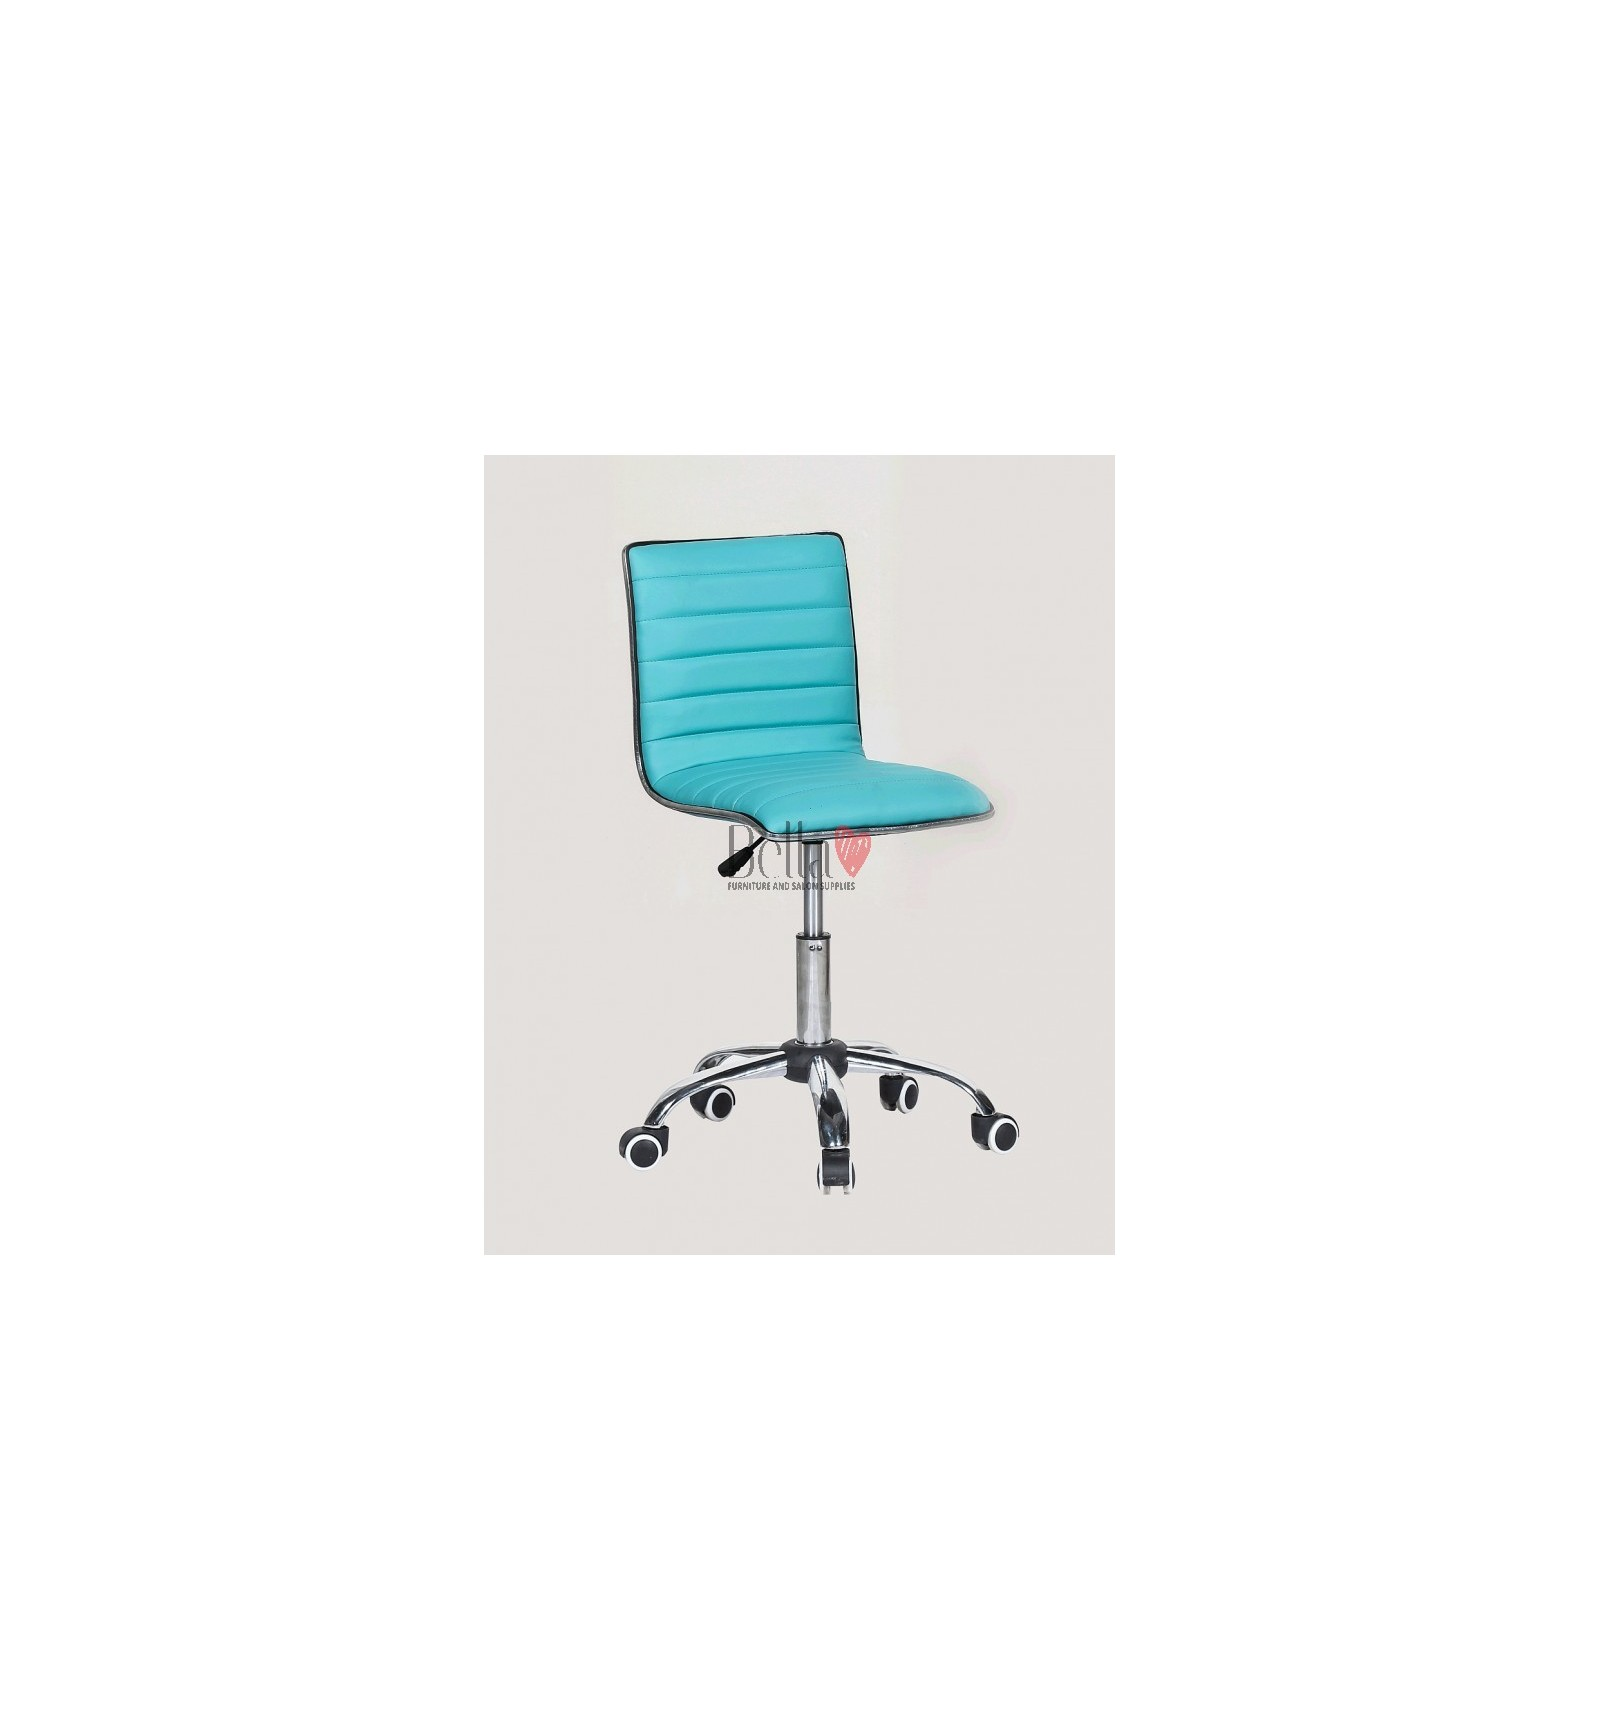 f522d1531 Best chairs for beautician. Turquoise chair for beauty salons Ireland  BFHC1156K